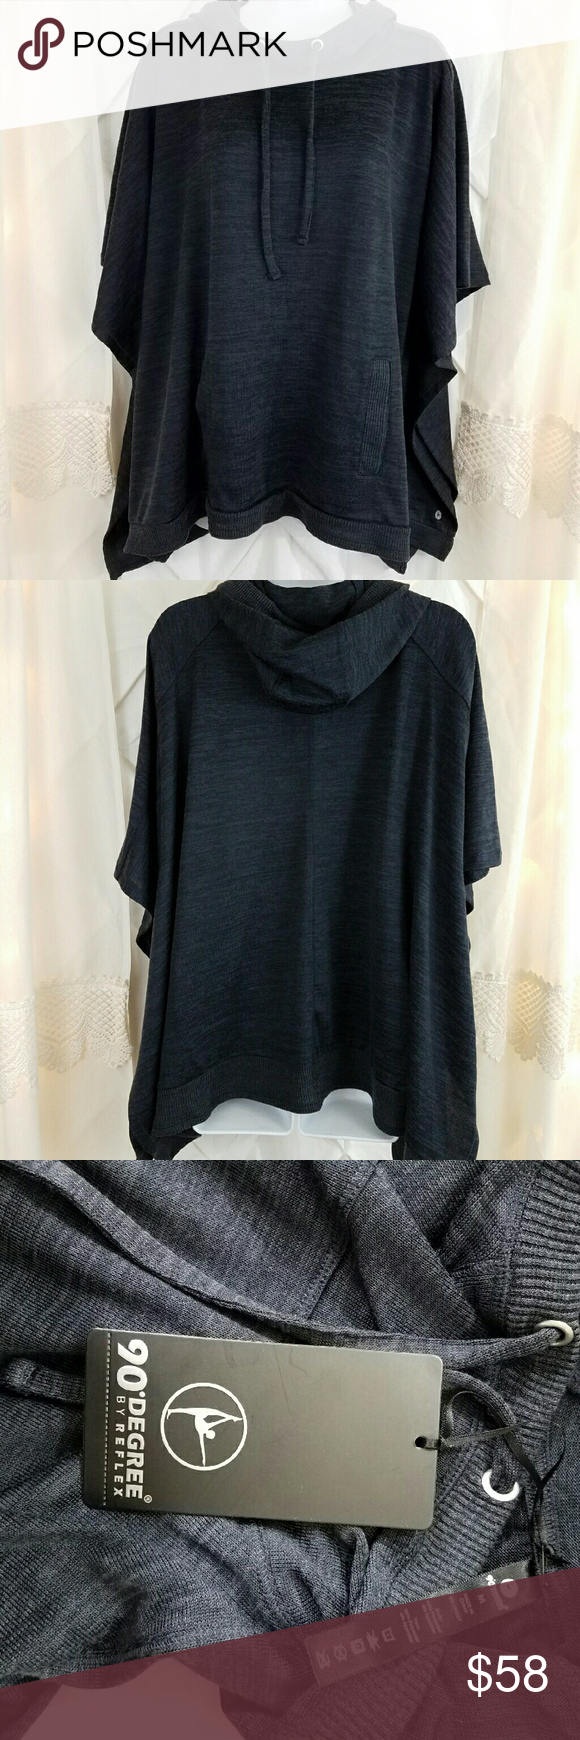 035d3b7628778 90 Degrees by reflex Poncho sweater Dark grey pullover poncho sweater with  front pocket new with tags. Great for covering up after a workout or yoga.  90 ...